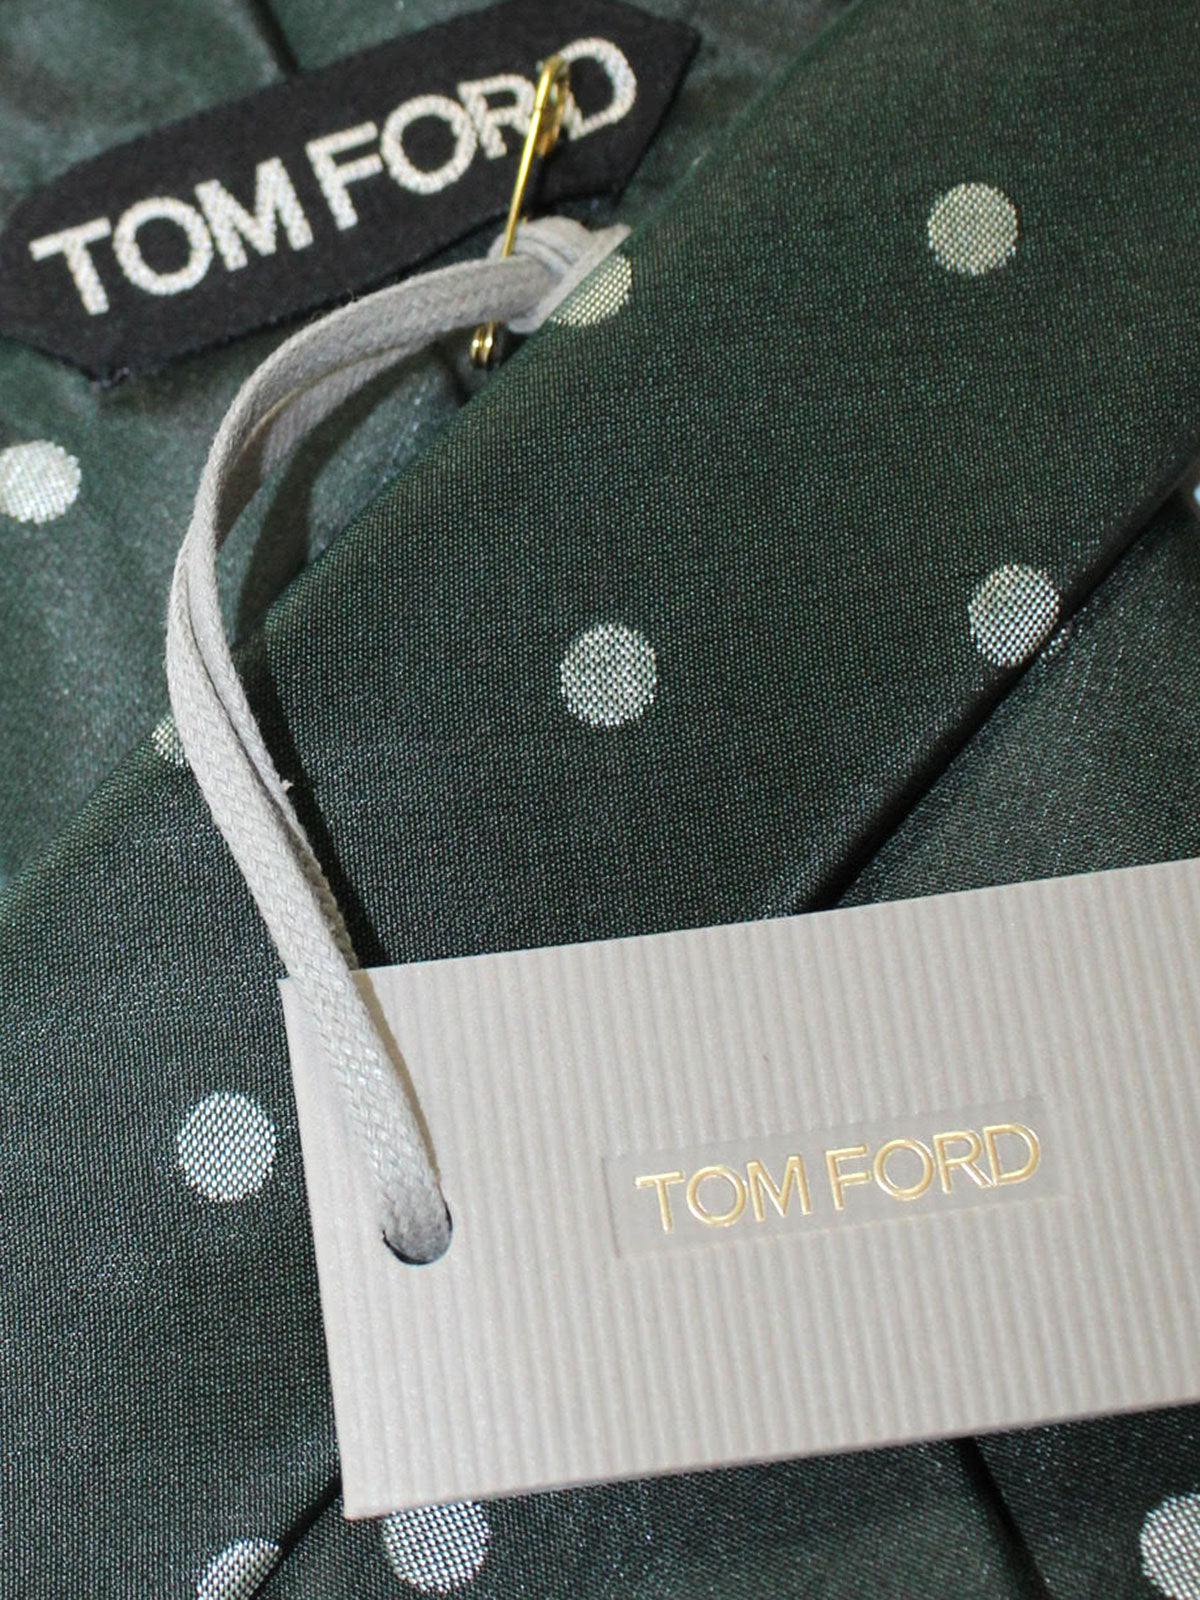 Tom Ford Tie Green Silver Polka Dots Design